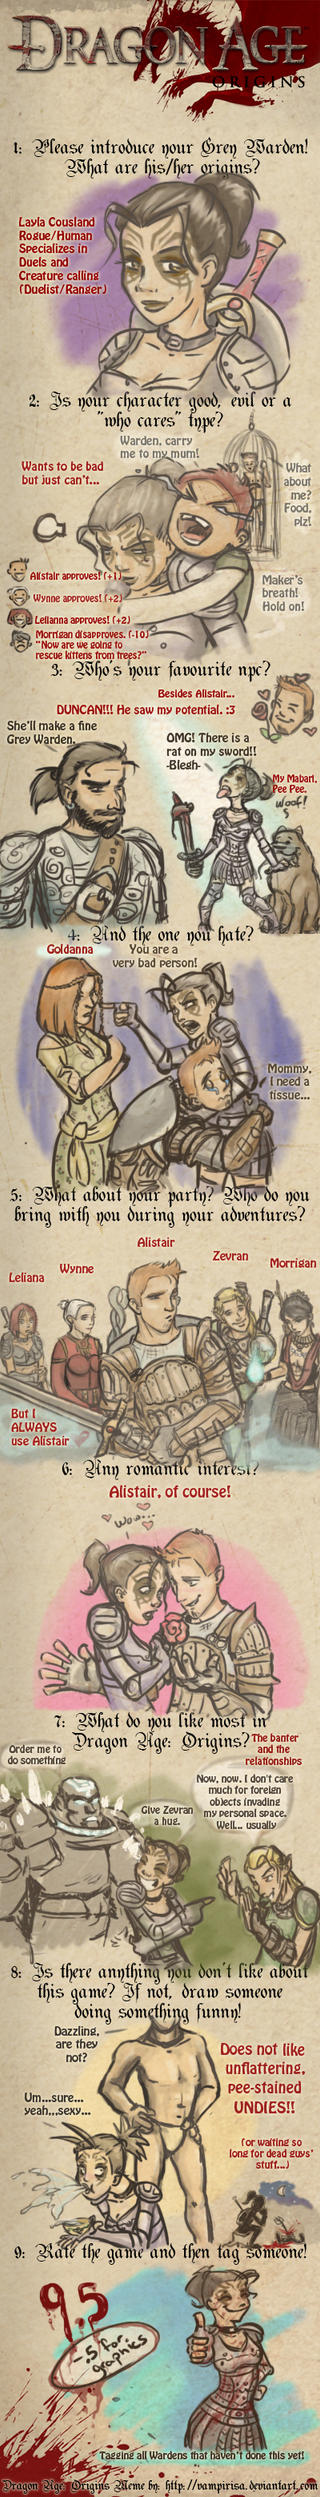 Dragon Age Origins Meme by ArbitraryJane